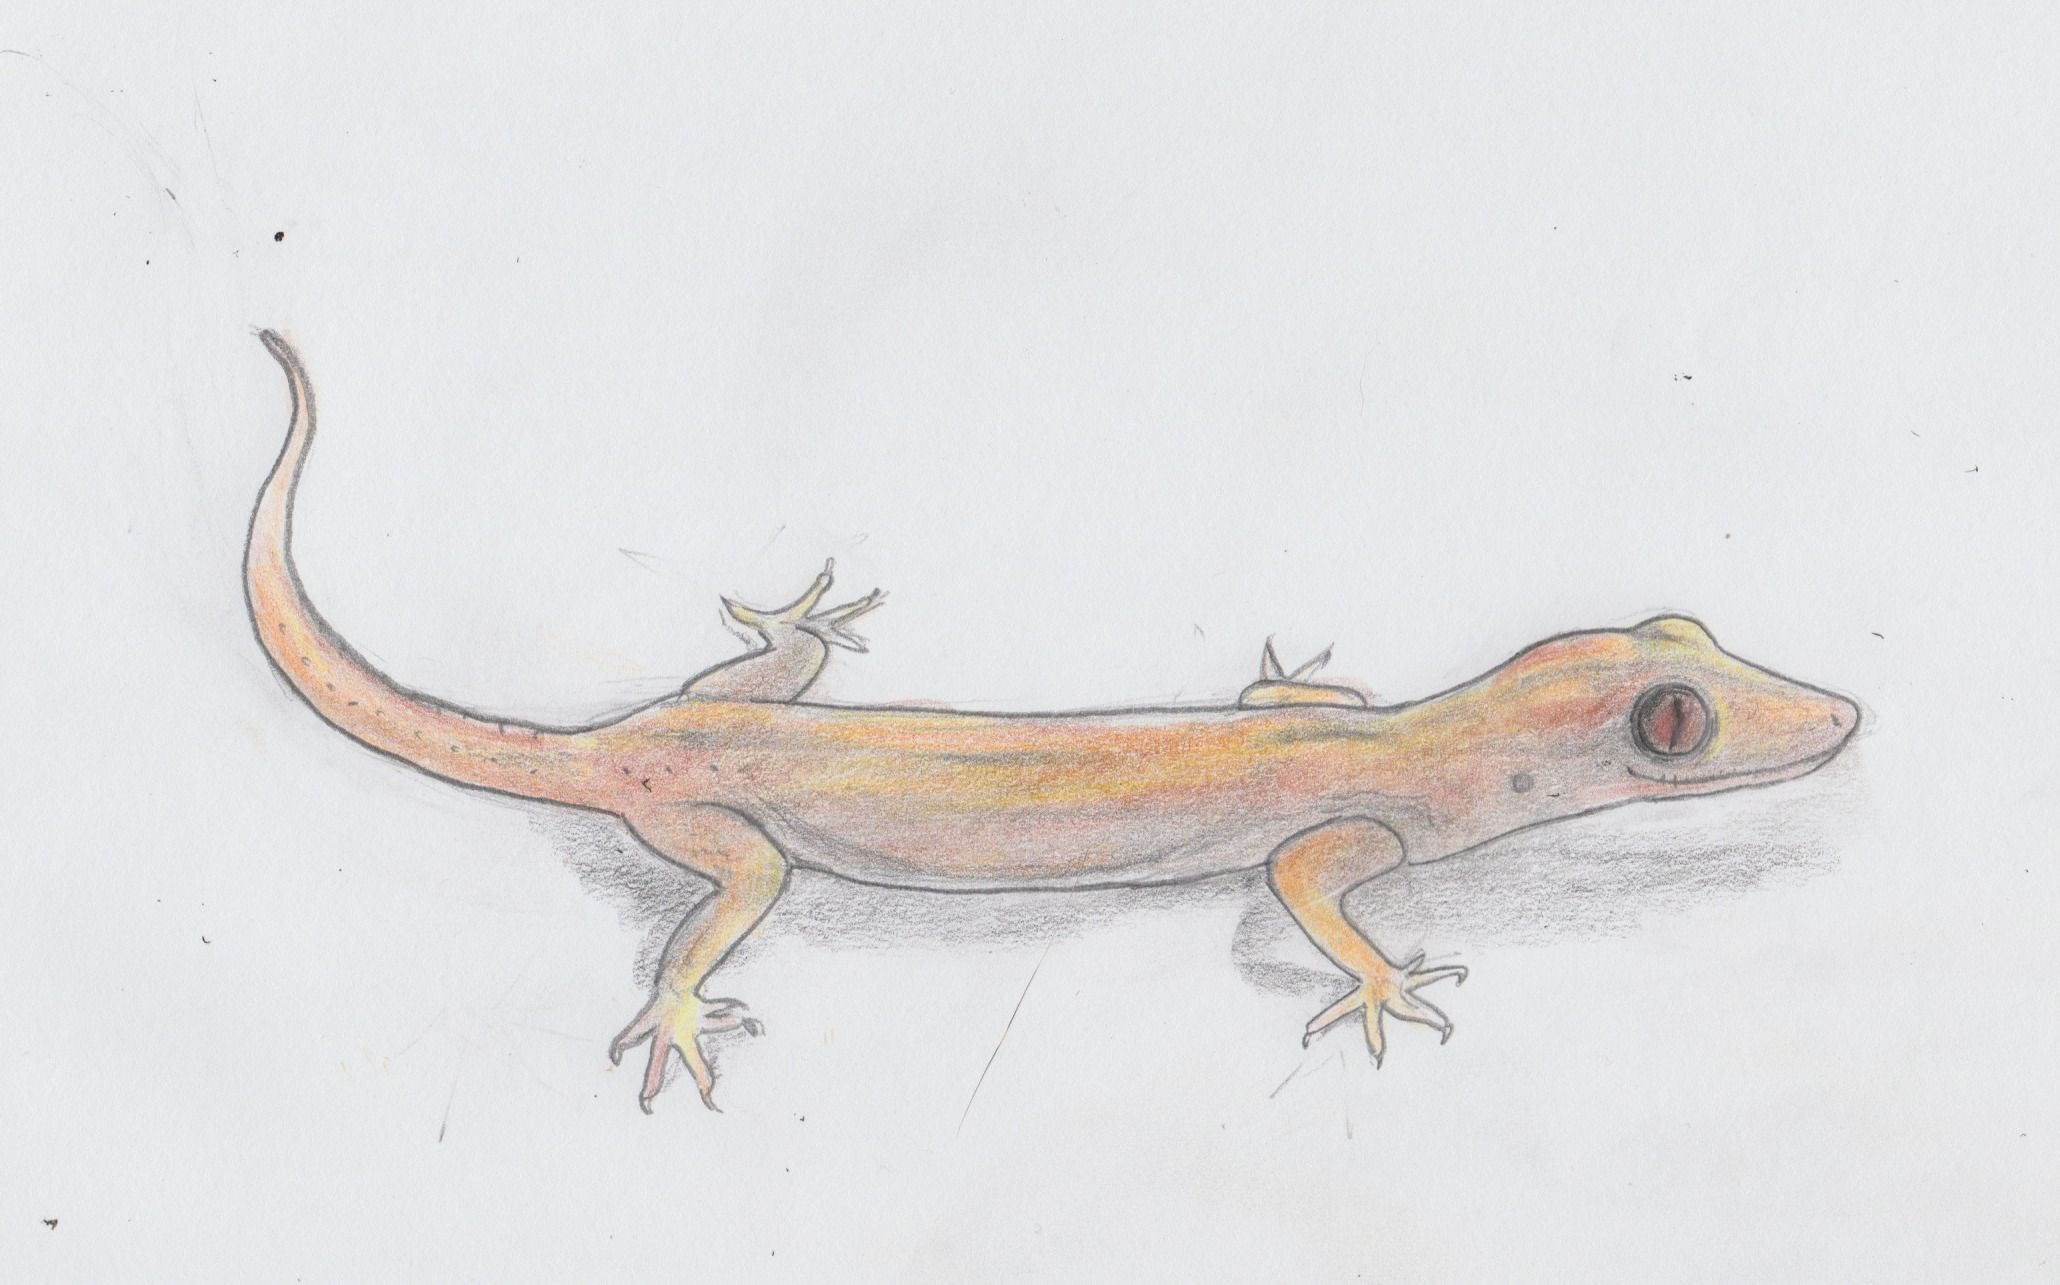 asian gecko quick drawing project jenny jump pencil drawing